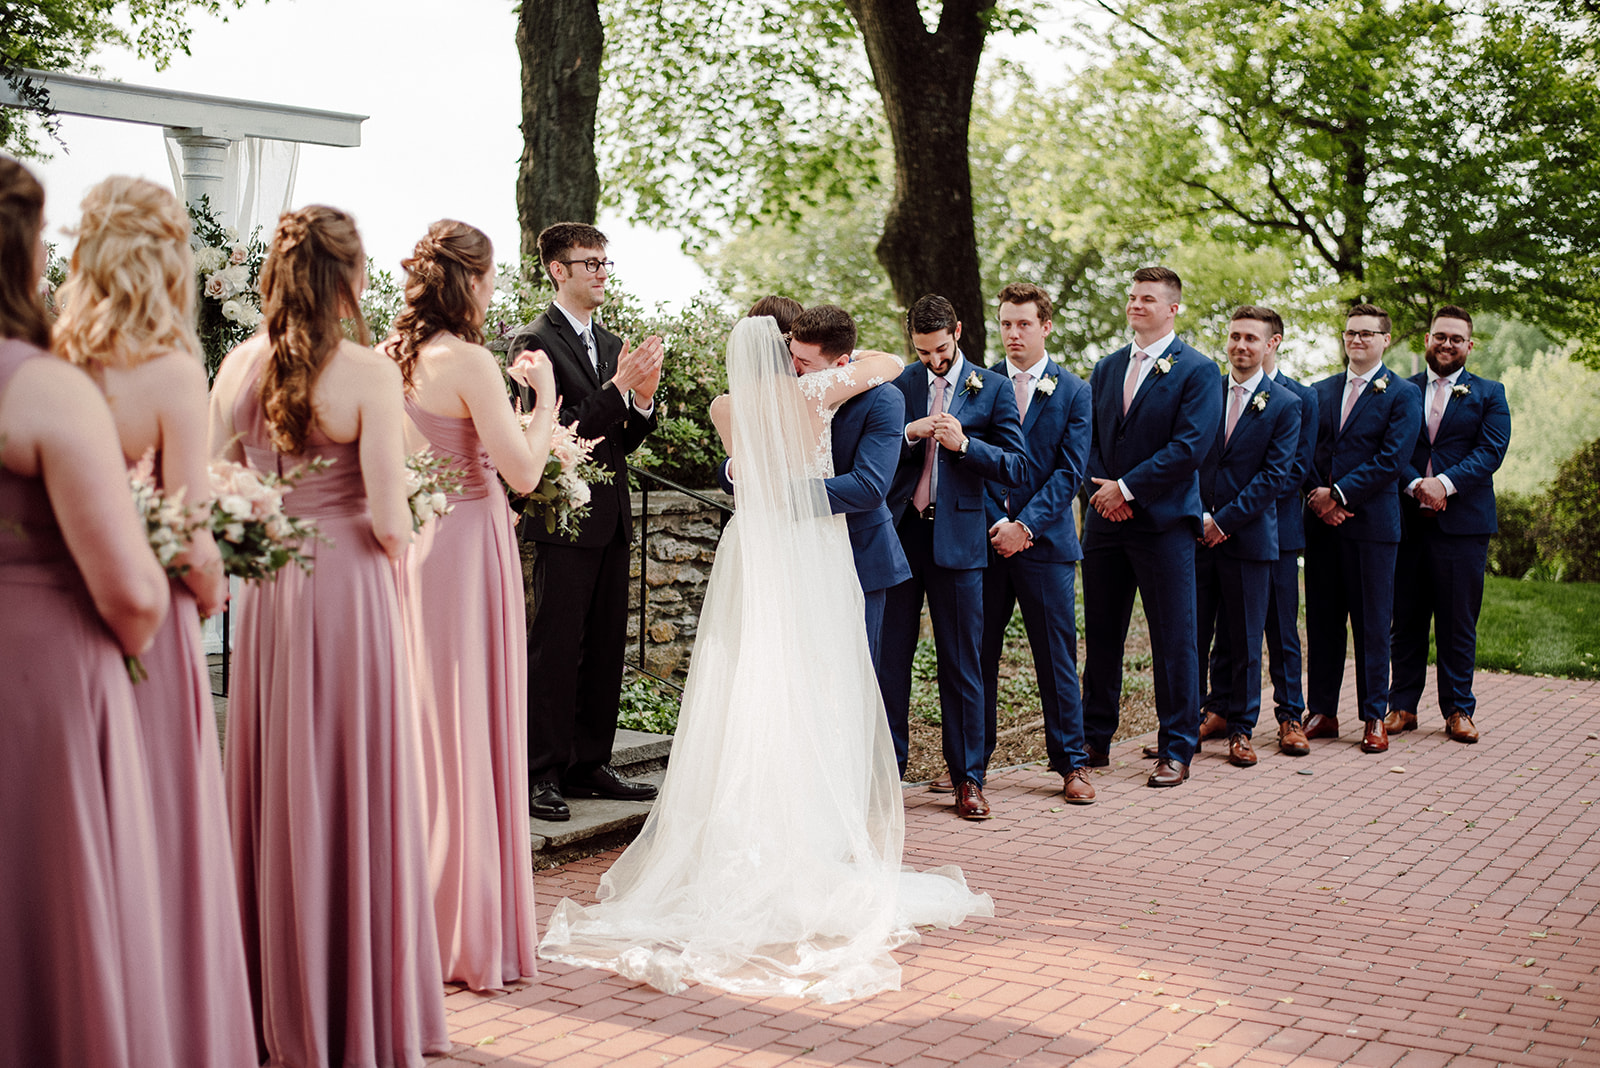 Bride and groom share an emotional embrace after reading their vows to one another.